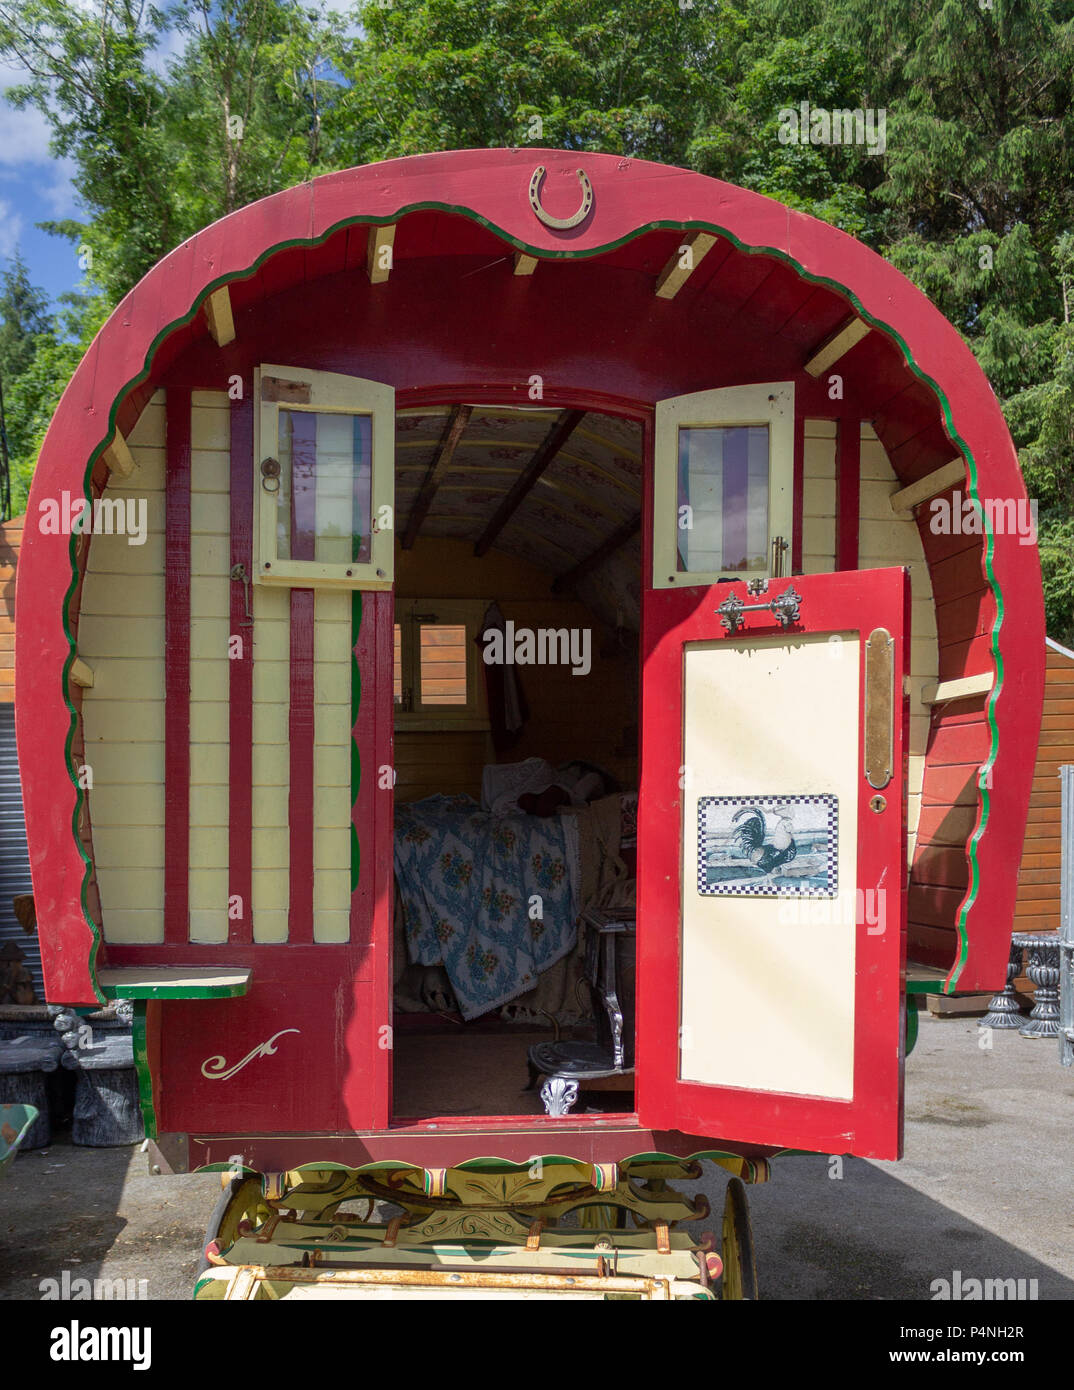 gypsy caravan or romany caravan painted yellow and red. - Stock Image